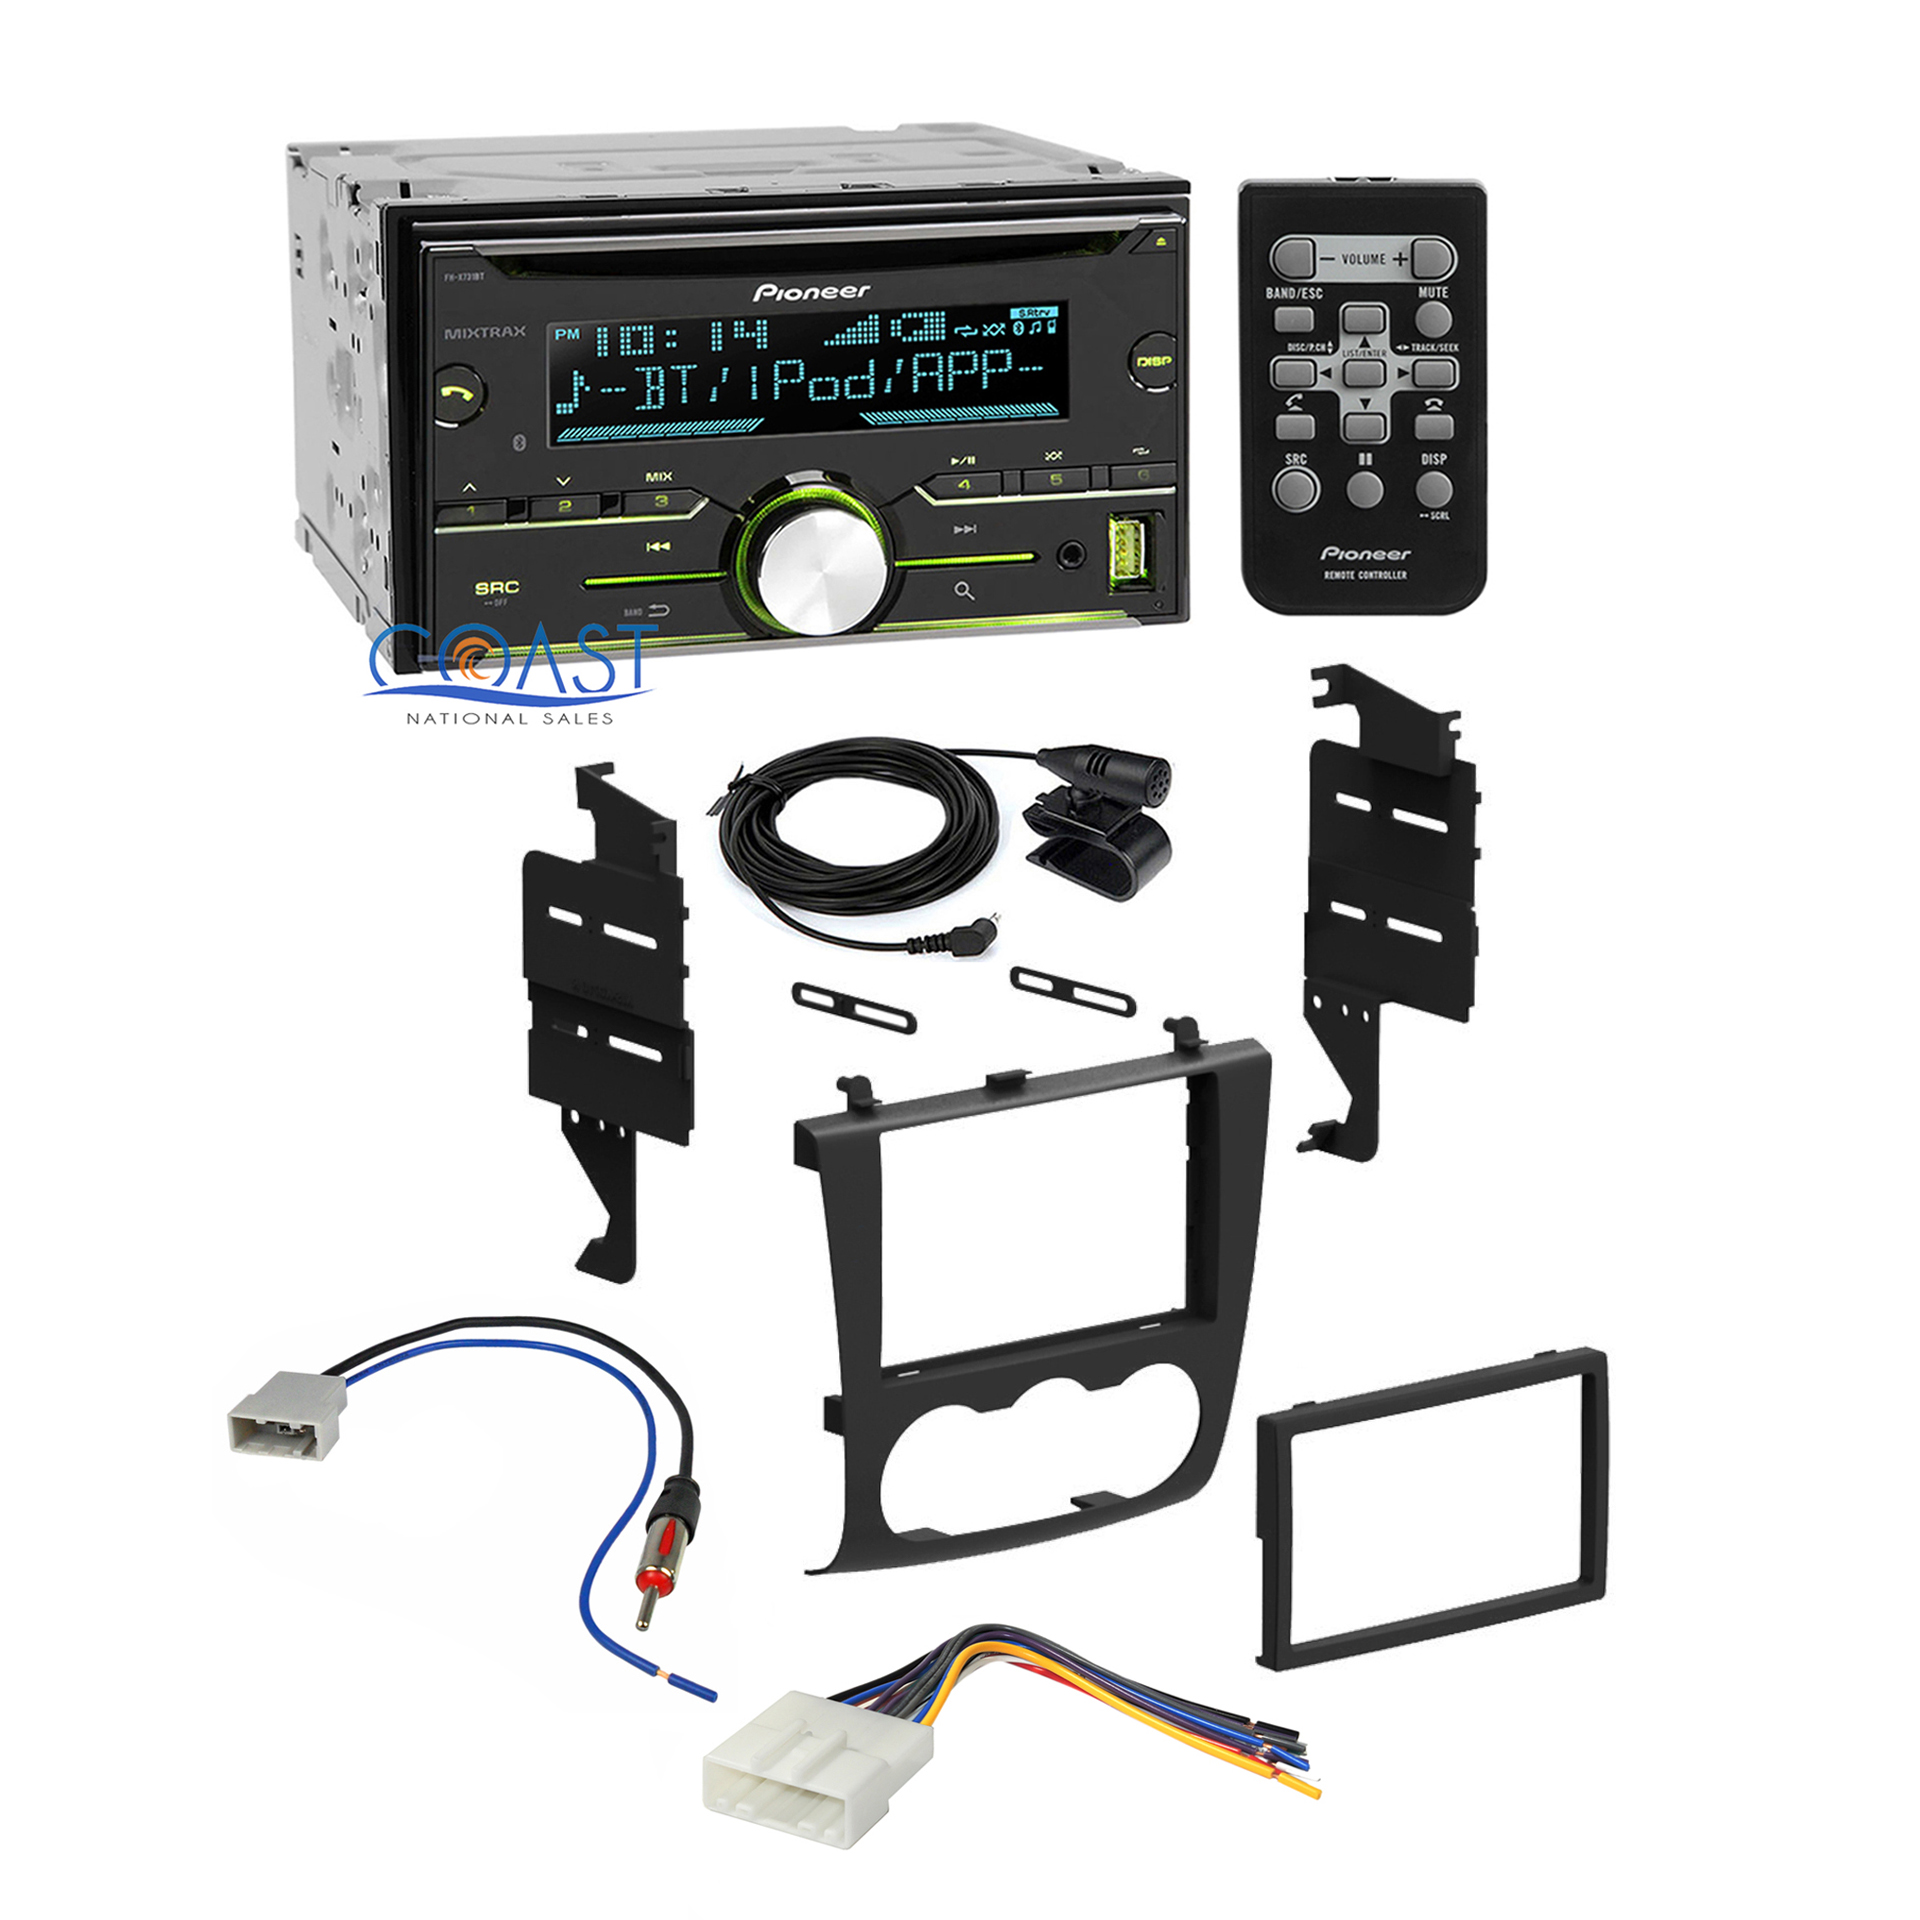 details about pioneer car radio stereo dash kit wiring harness for 2007 2011 nissan altima  i have a 2007 nissan altima with a back